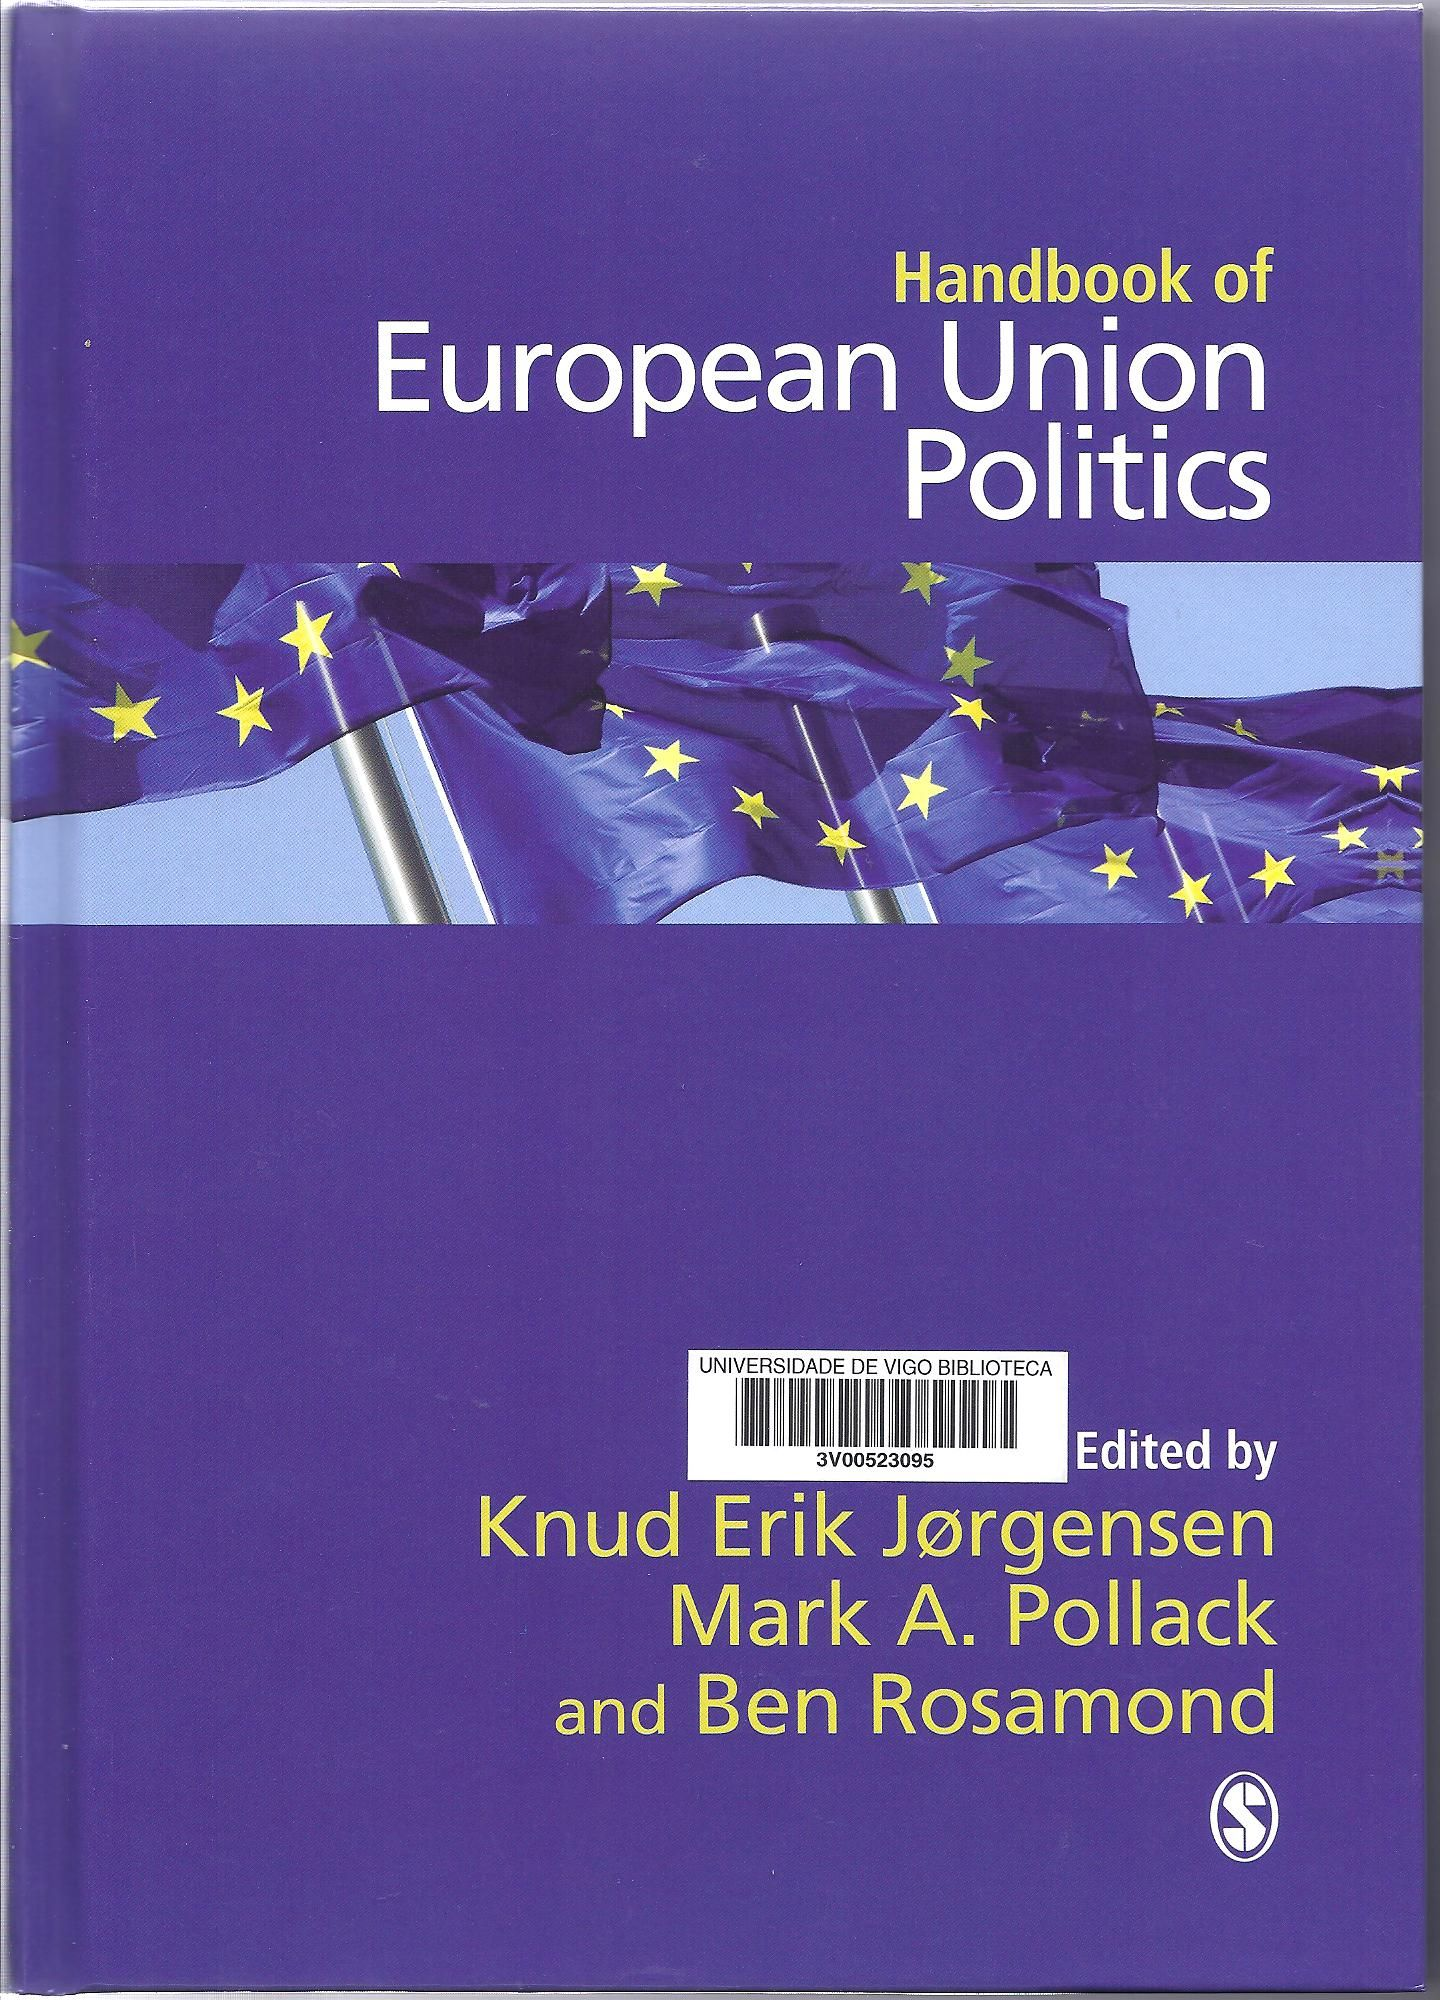 Handbook of European Union politics / edited by Knud Erik Jørgensen, Mark A. Pollack and Ben Rosamond